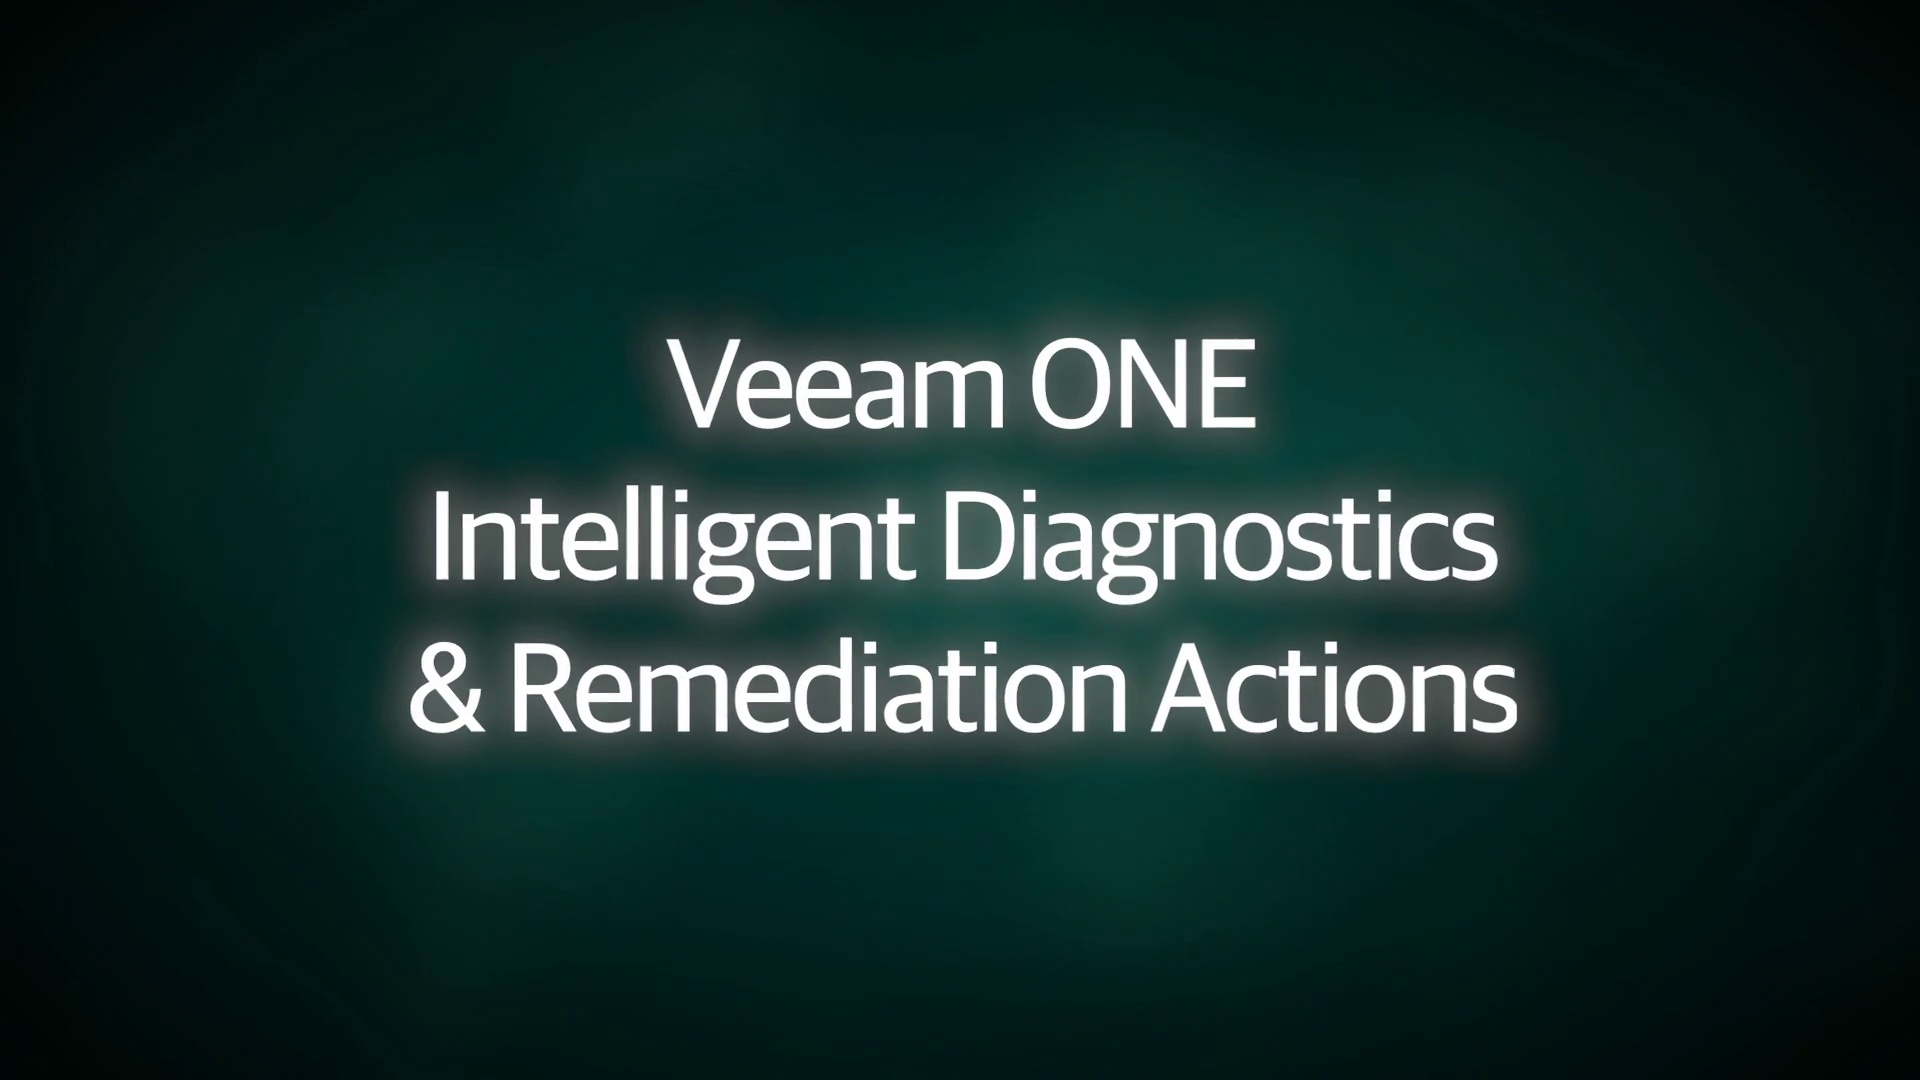 Veeam ONE Intelligent Diagnostics & Remediation Actions